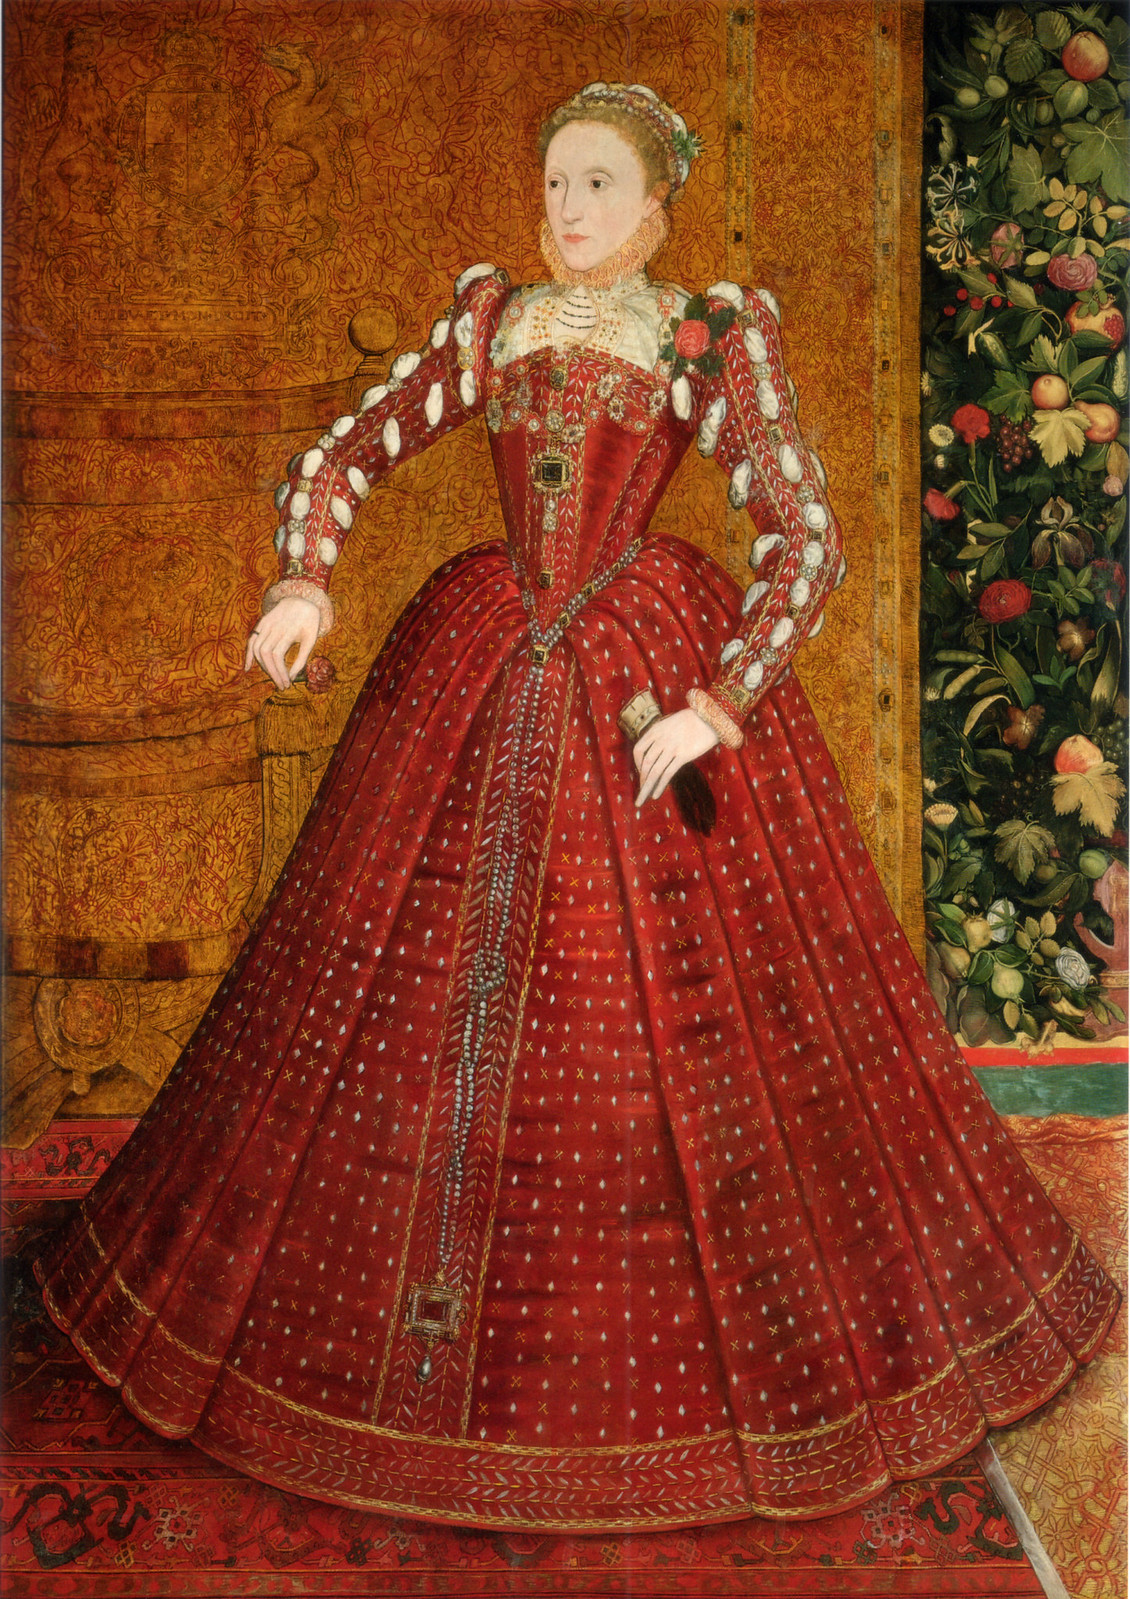 The 'Hampden' portrait, by Steven van der Meulen, ca. 1563.